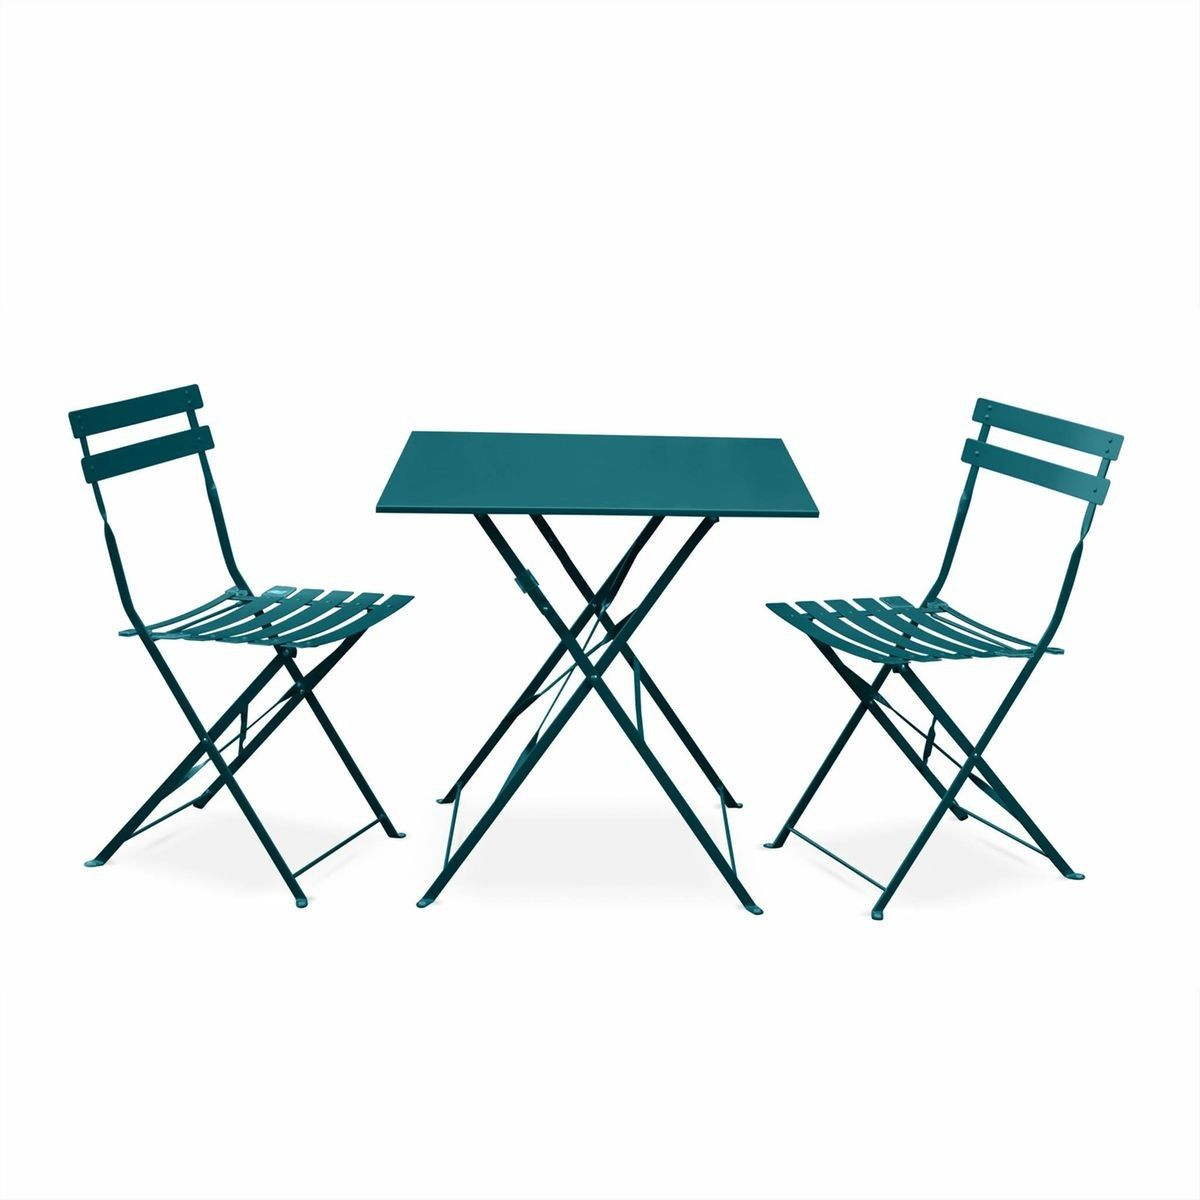 Salon De Jardin Design Pliable Salon De Jardin Bistrot Pliable Emilia Carré Bleu Canard Table